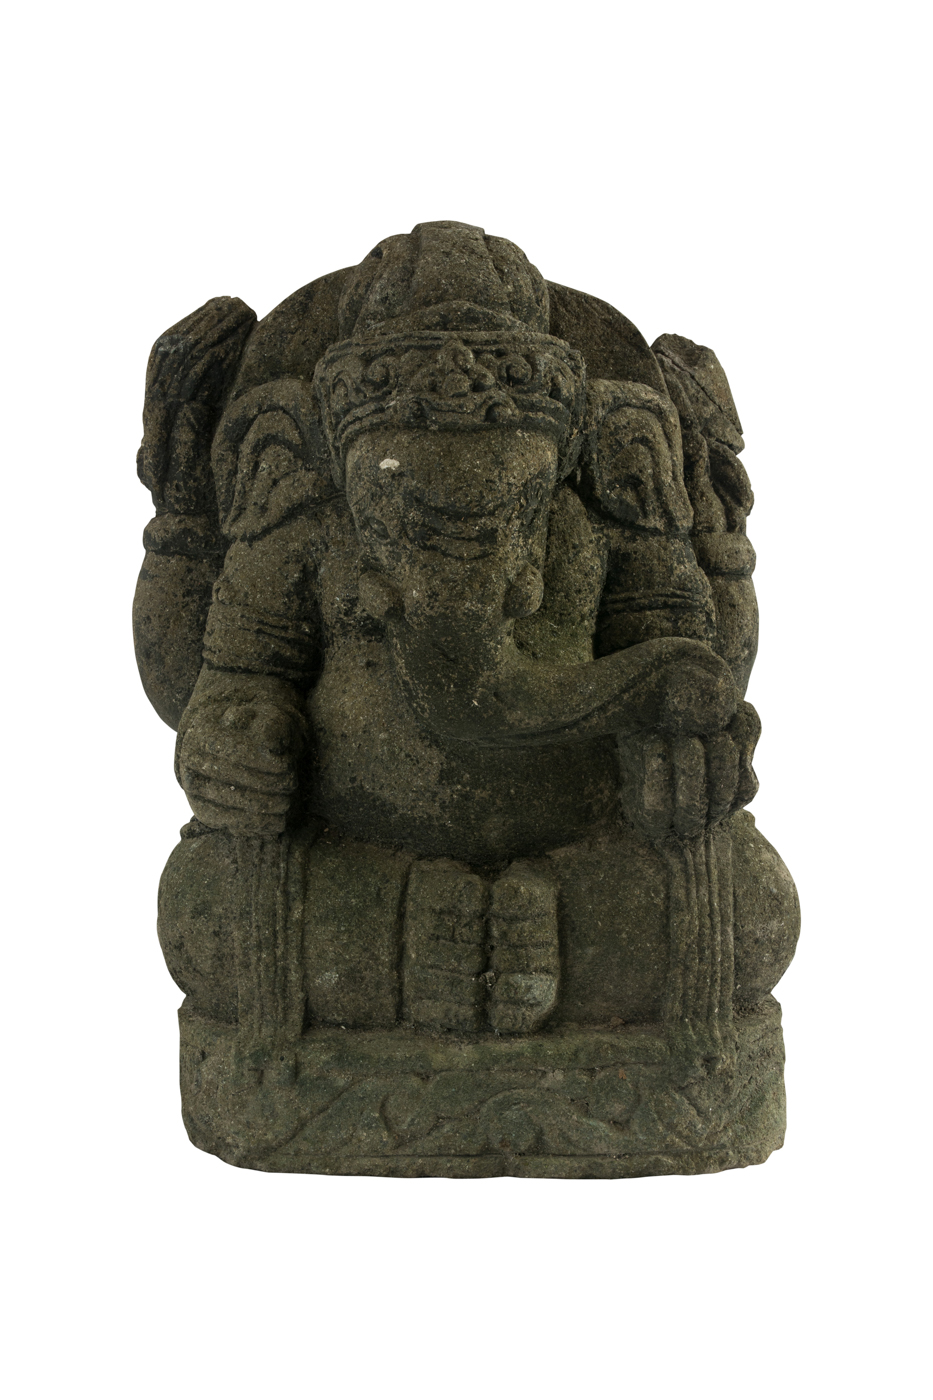 Ganesh carved in stone